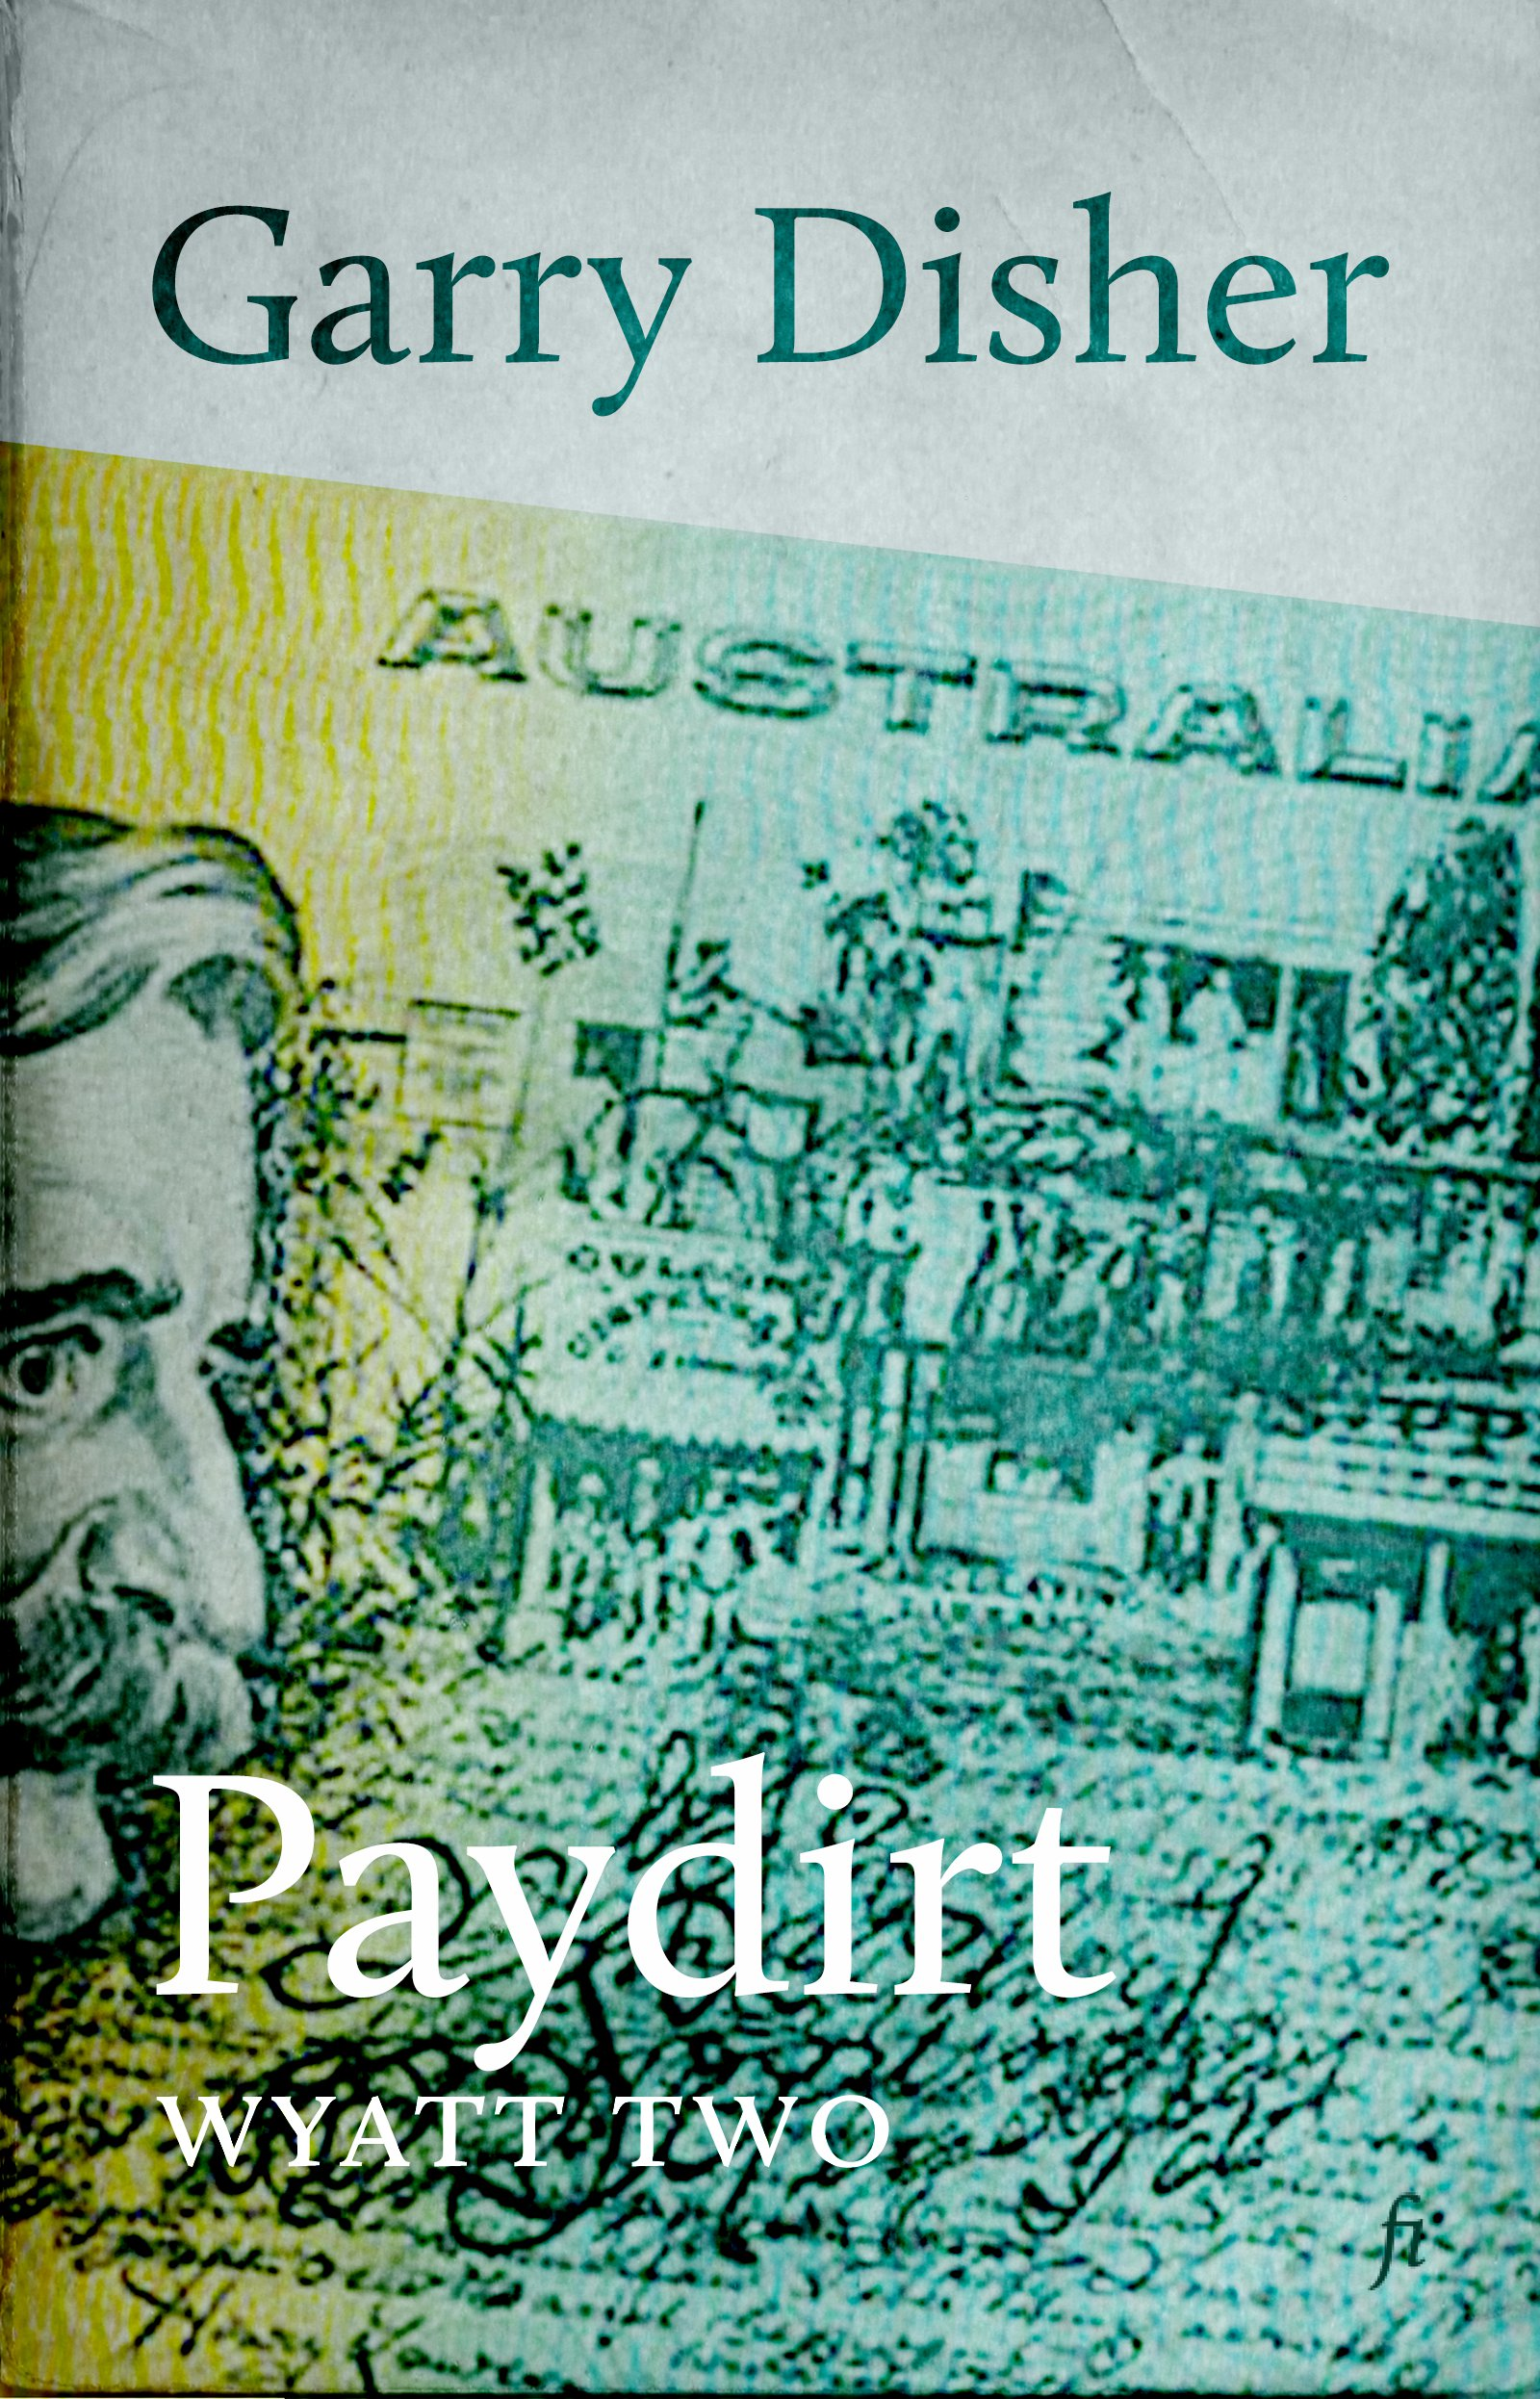 Book Cover: Wyatt 2 Paydirt (1992) Cover